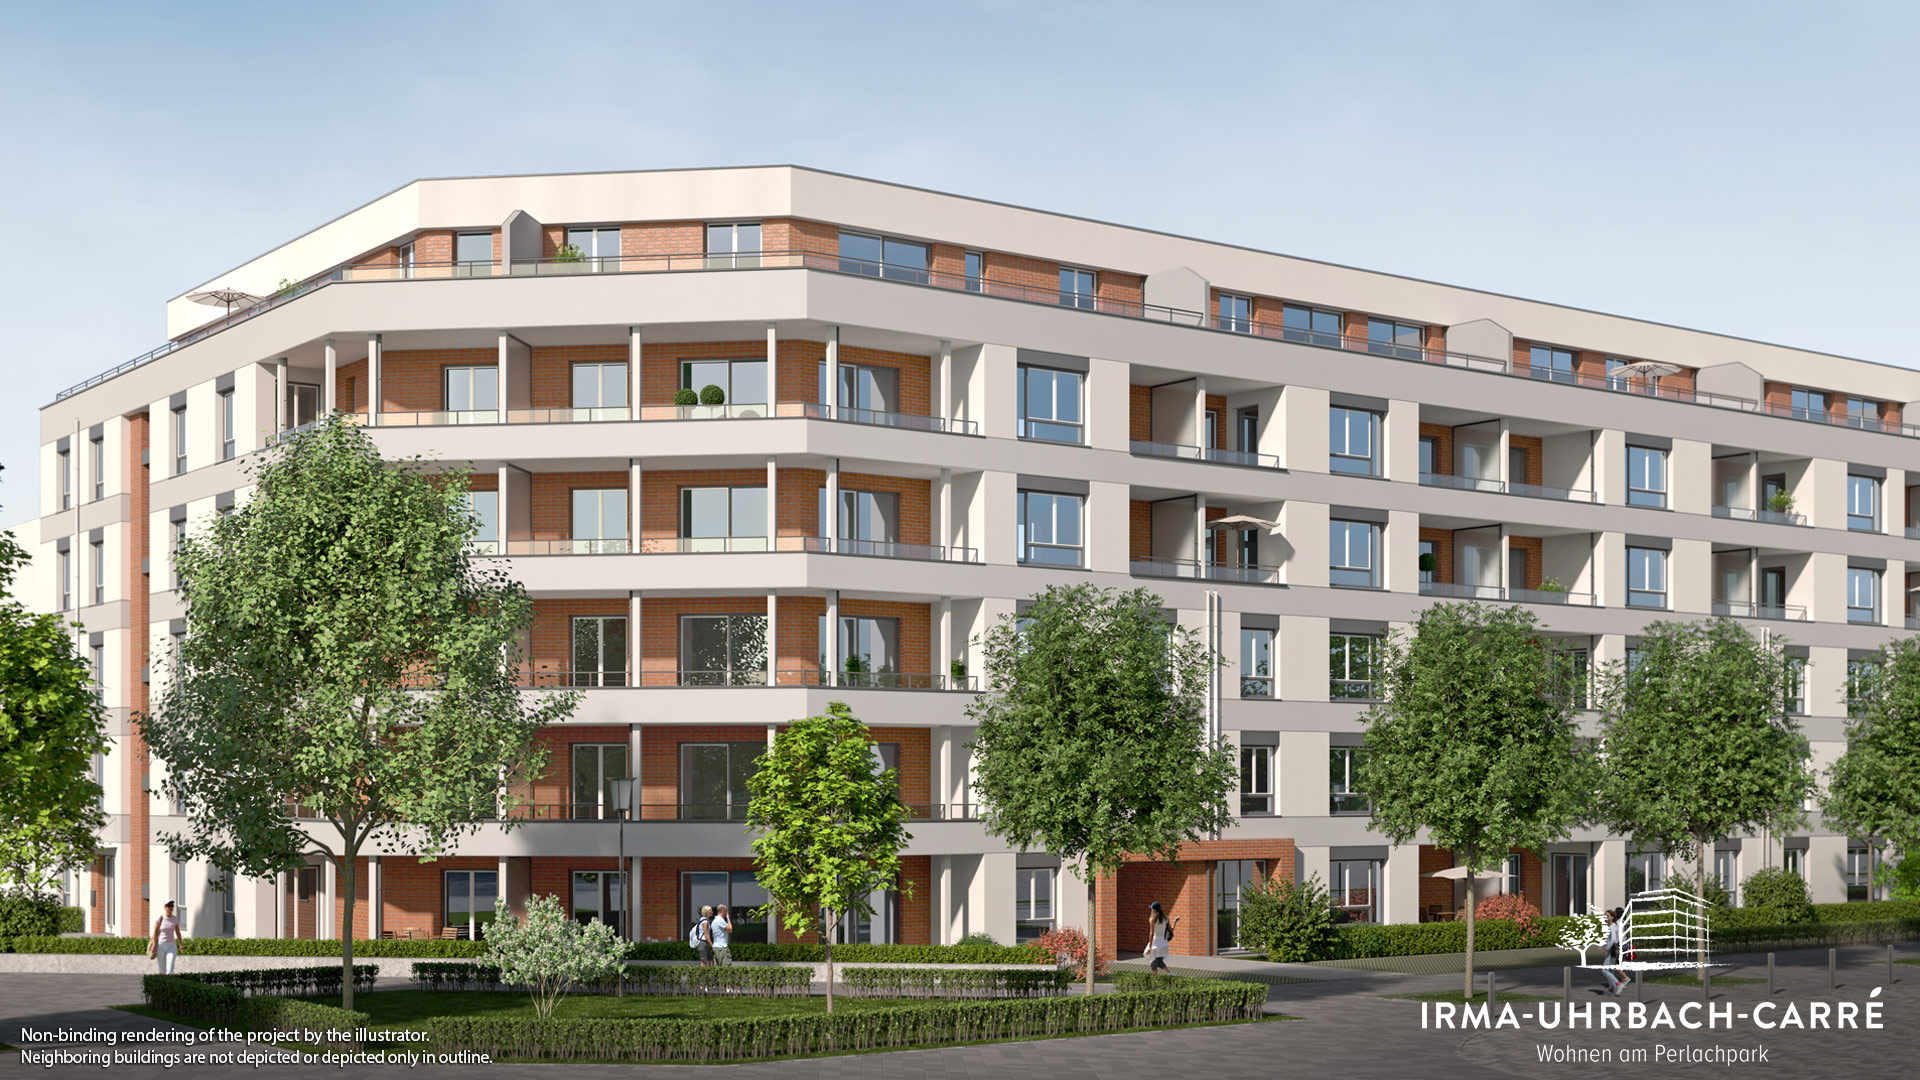 Property Irma-Uhrbach-Carr - Illustration 1